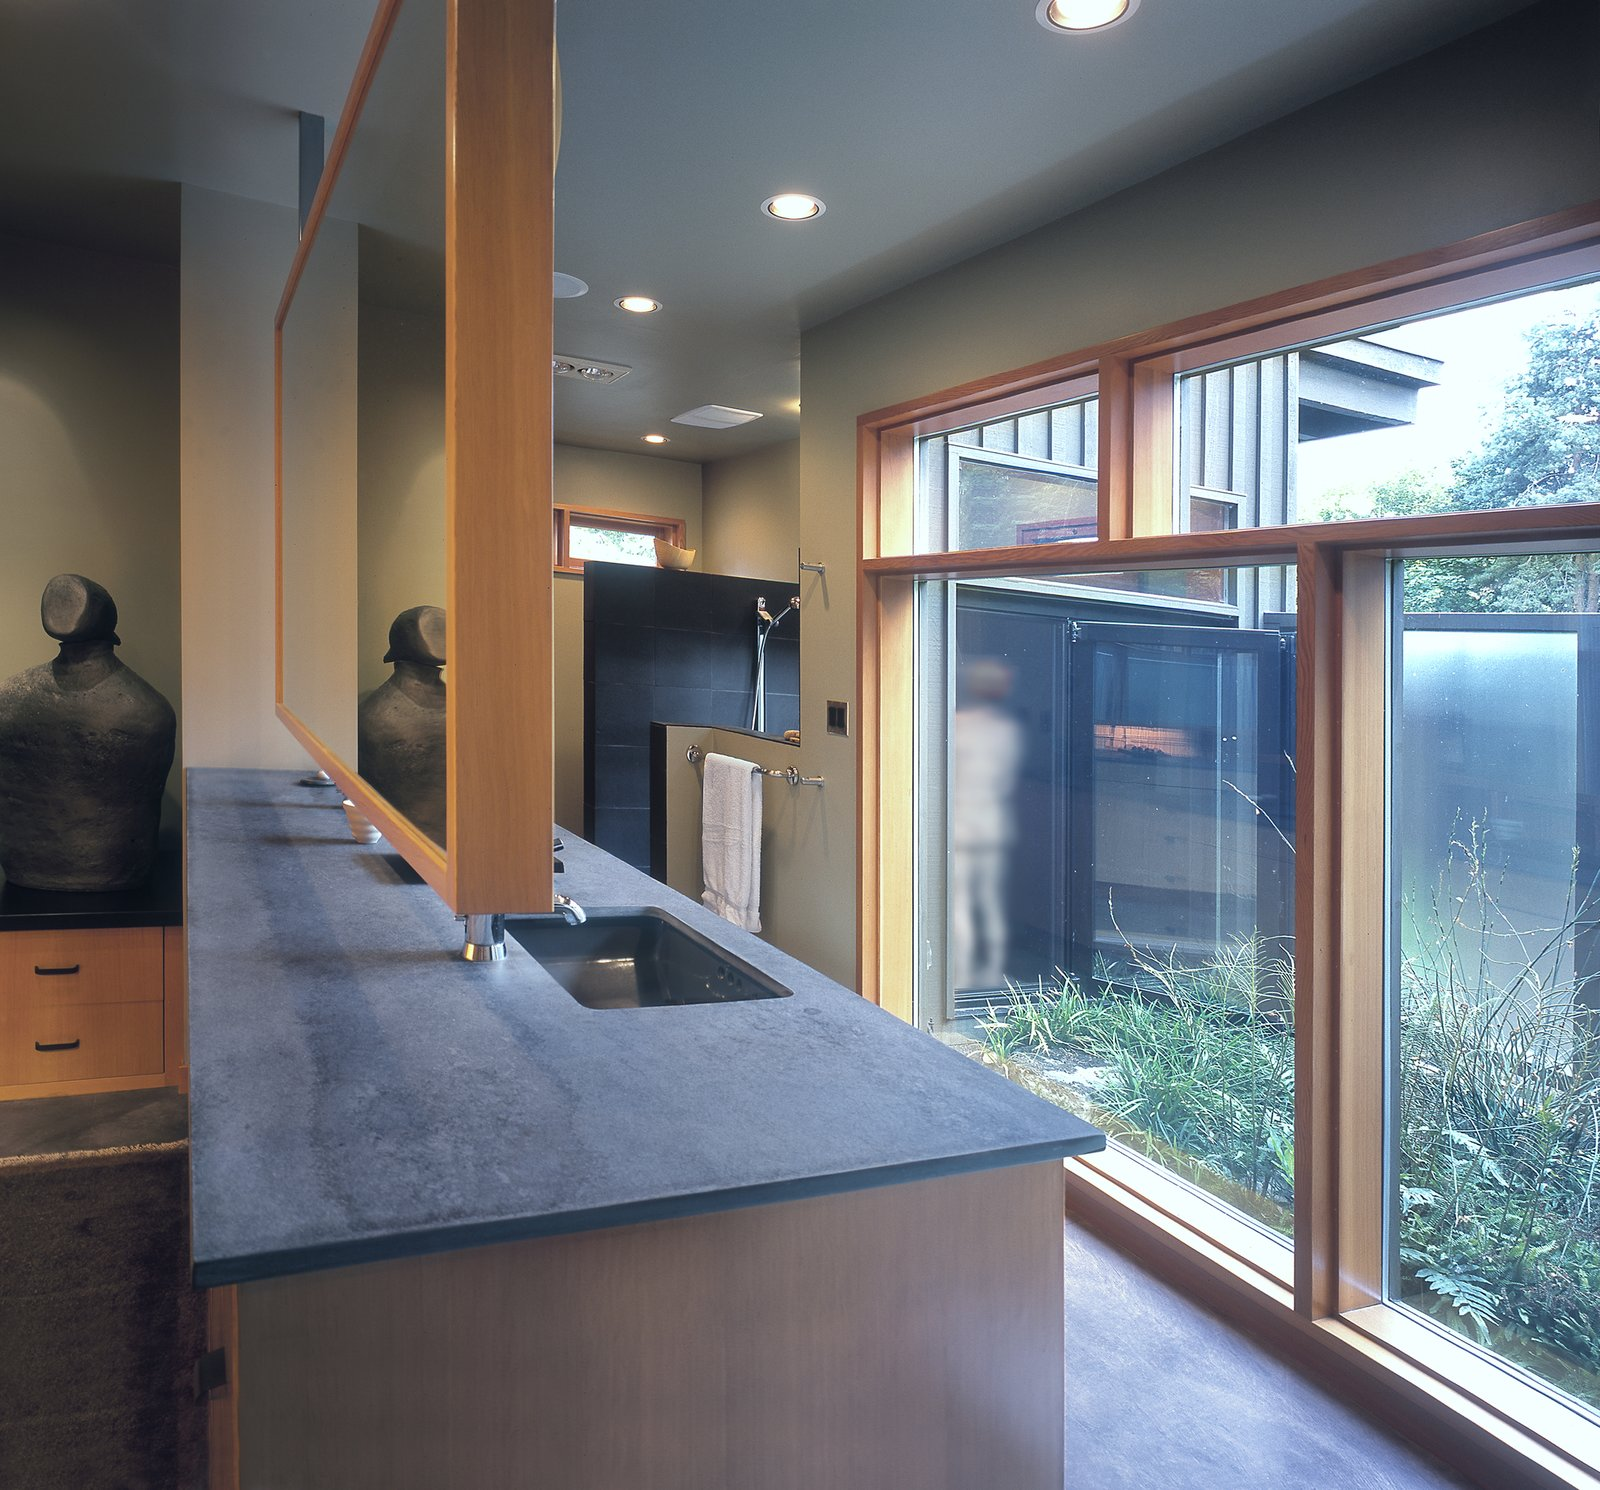 The Master Bathroom addition opens to a private garden court. The room features timeless materials such as Fireslate countertops and Douglas Fir casework.  Belluschi Addition by Richard Brown Architect